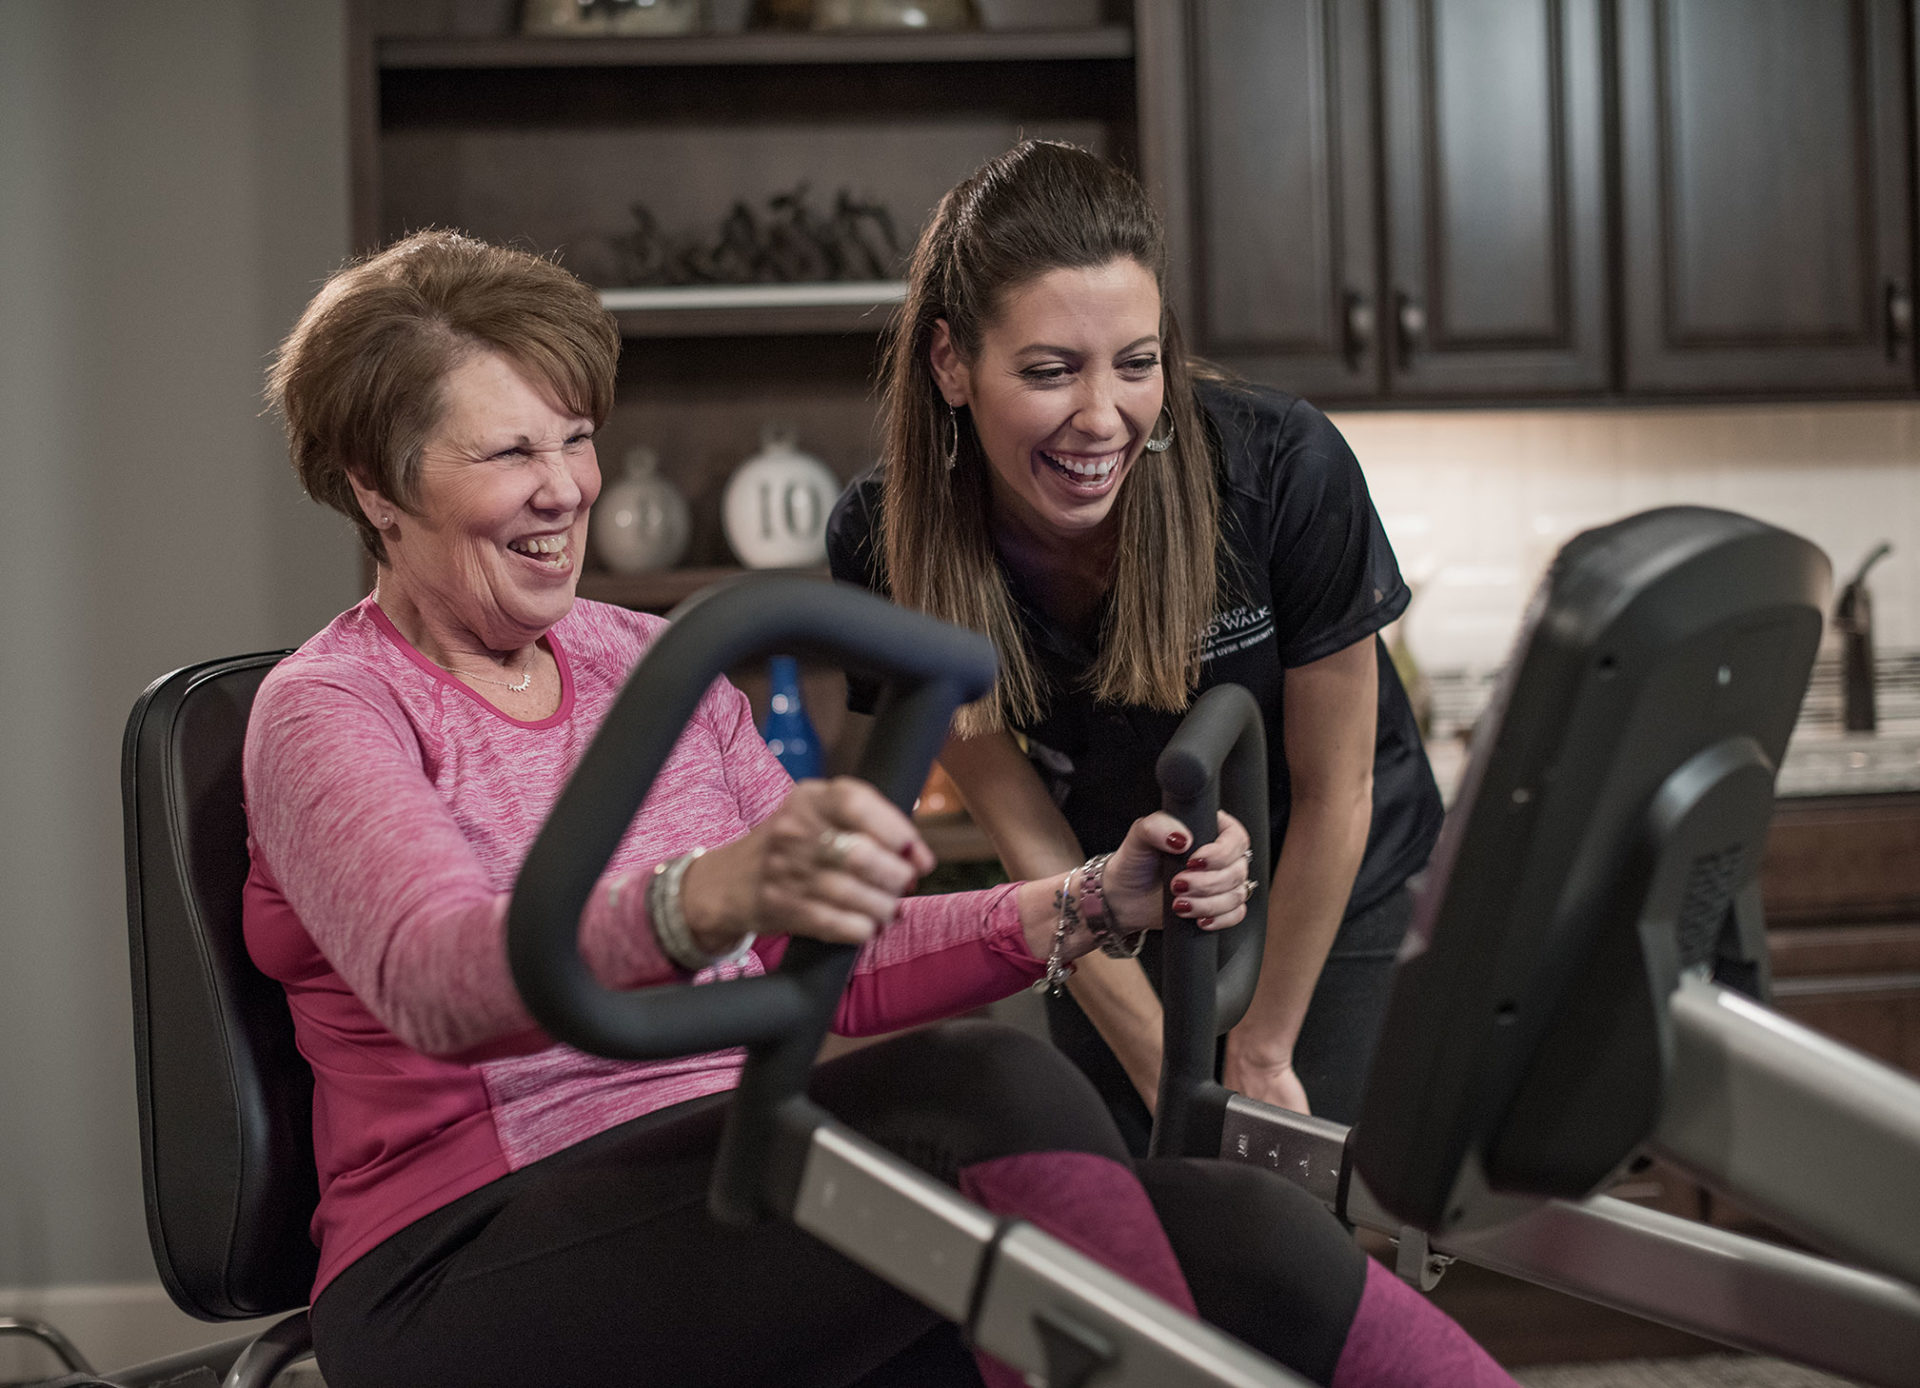 At Capital Health Management, We Encourage Residents To Live Life To The Fullest By Maintaining Health And Happiness.